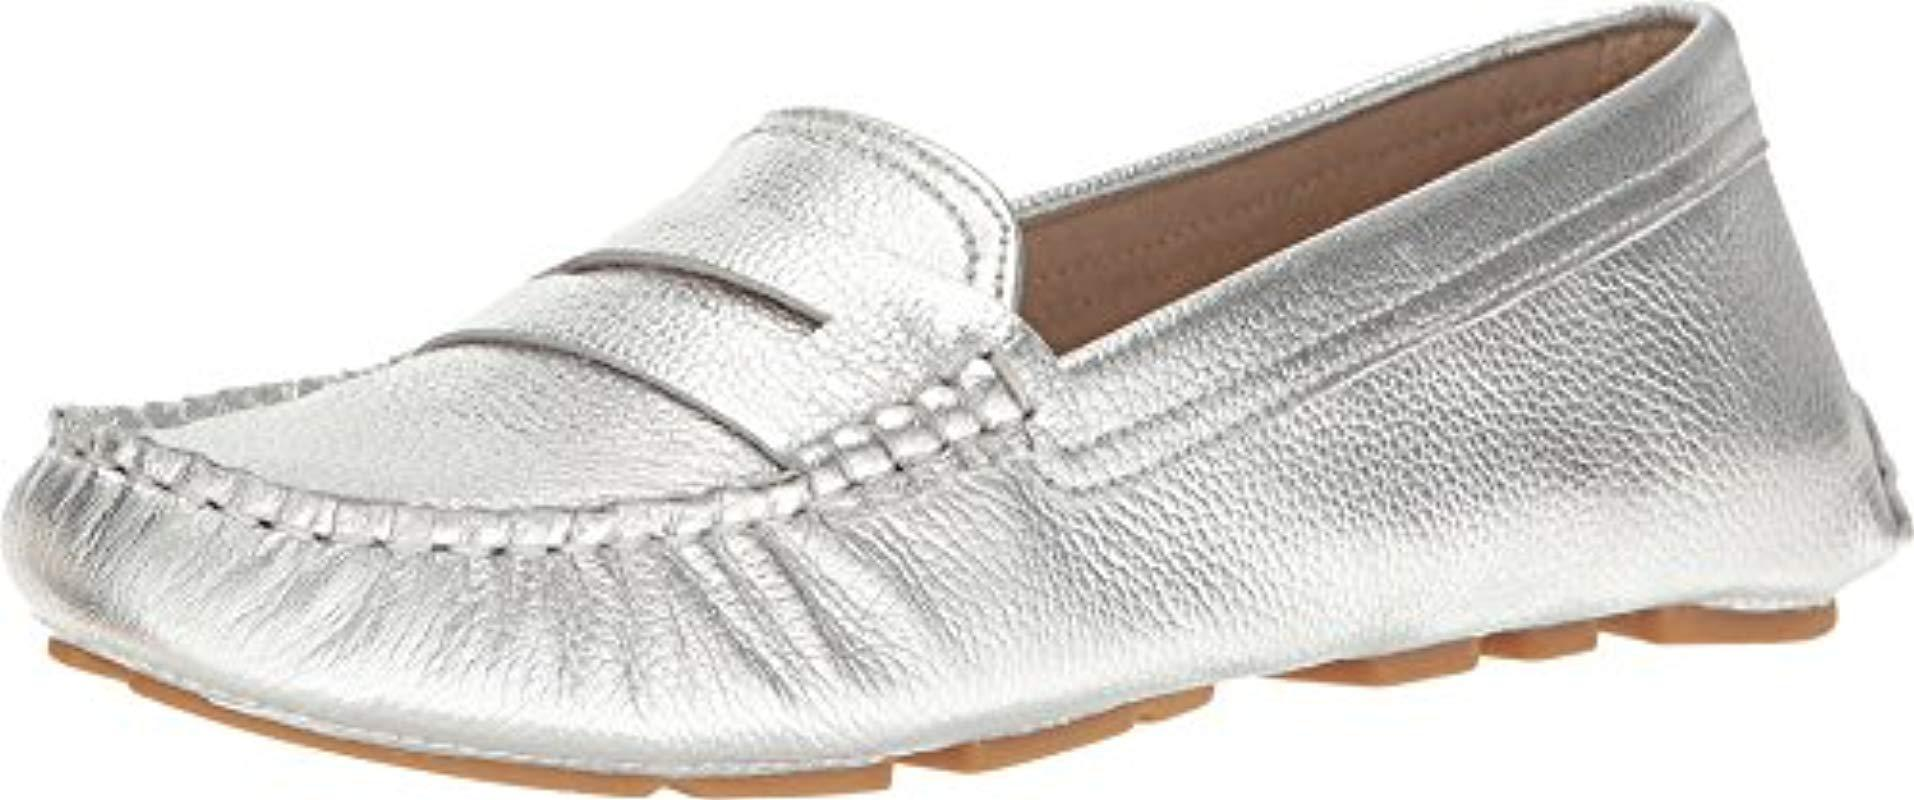 24a5fd89832 Lyst - Sam Edelman Filly Penny Loafer in Metallic - Save 75%